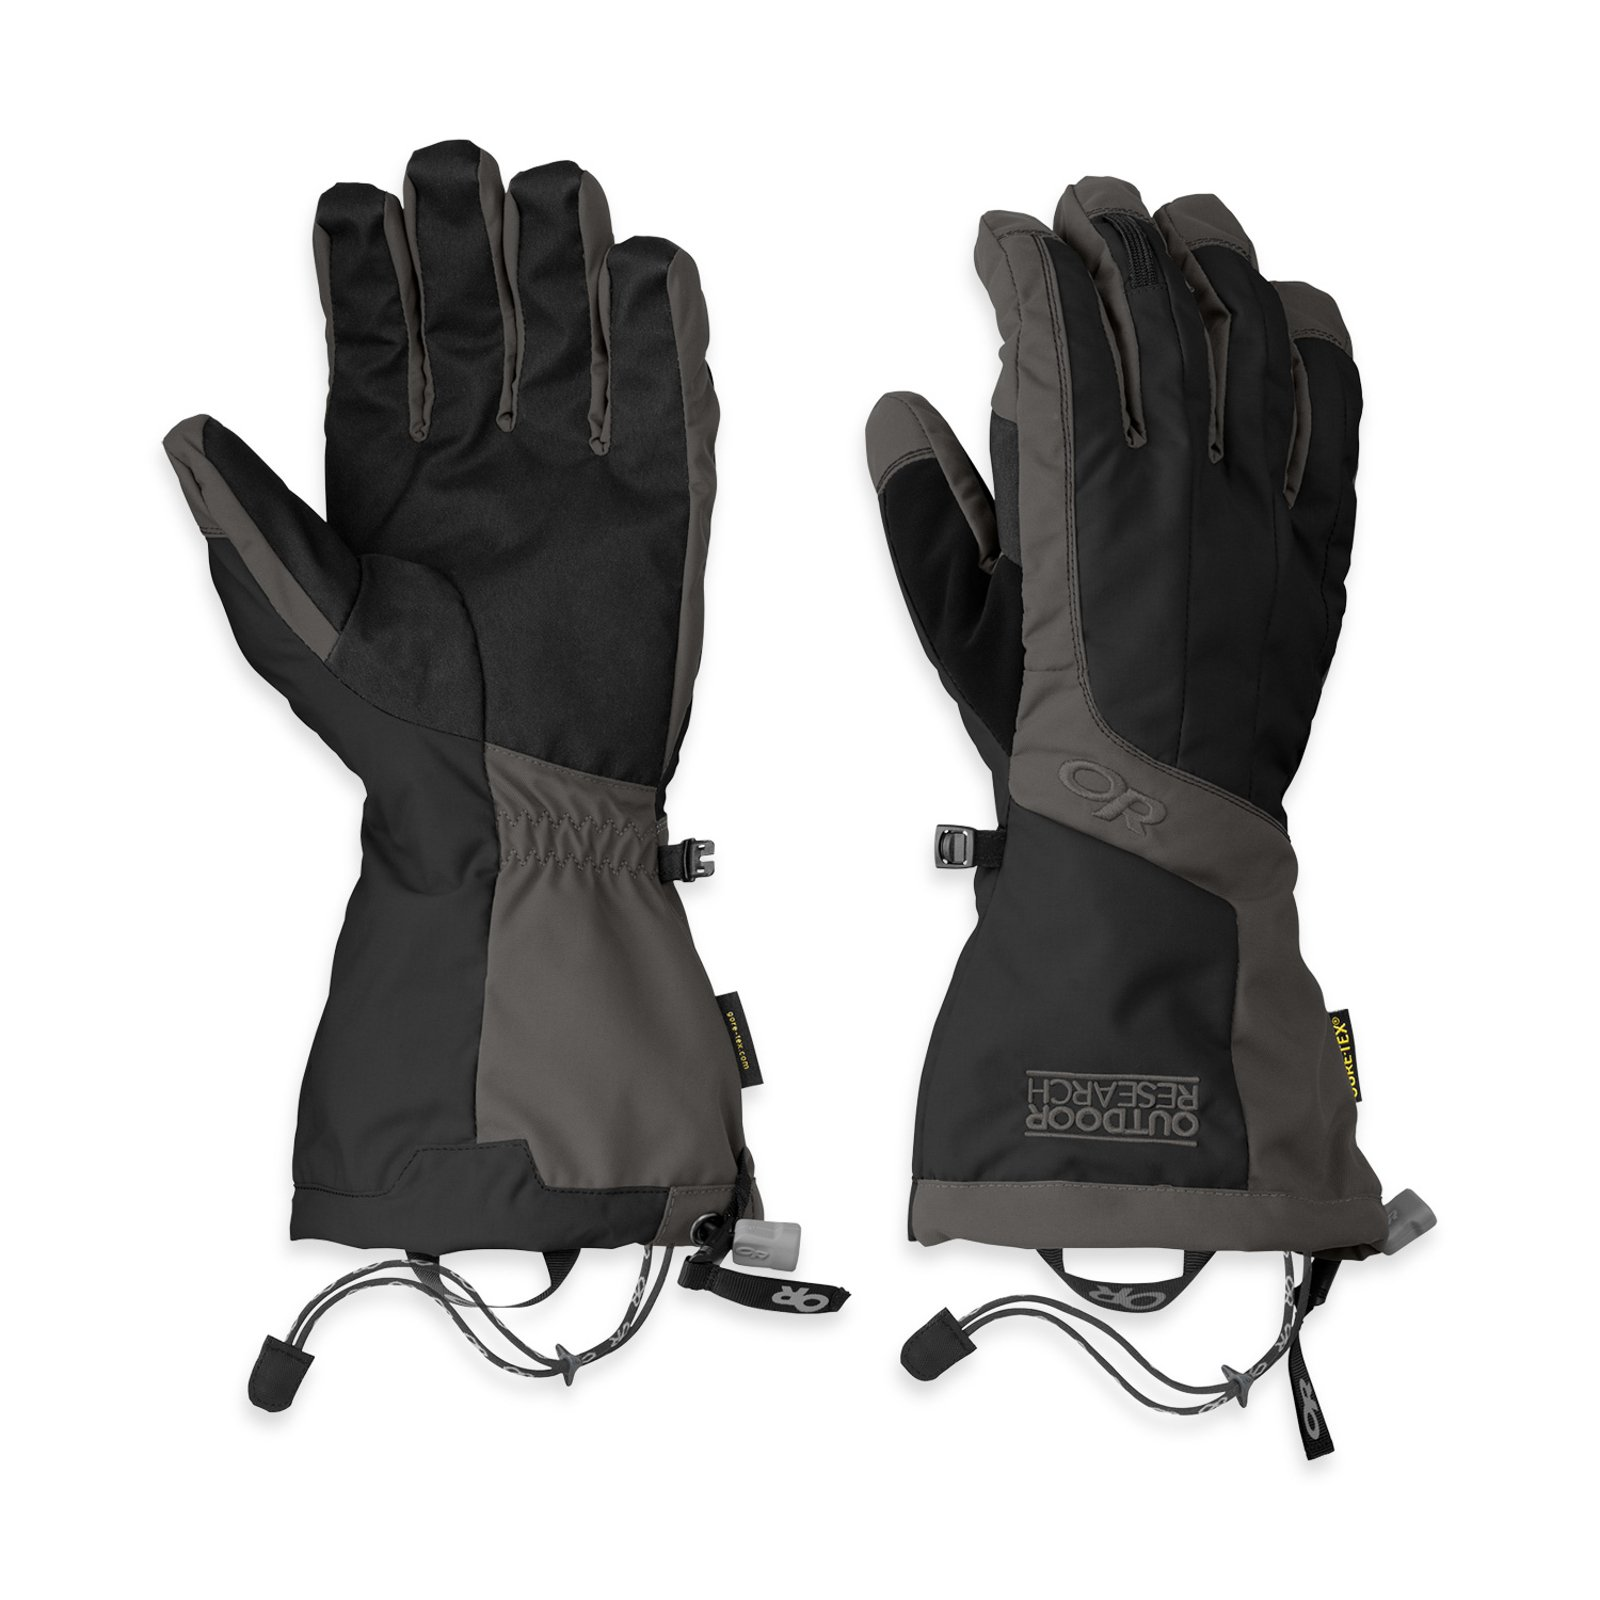 Outdoor Research Men's Arete Gloves, Black/Charcoal, Large